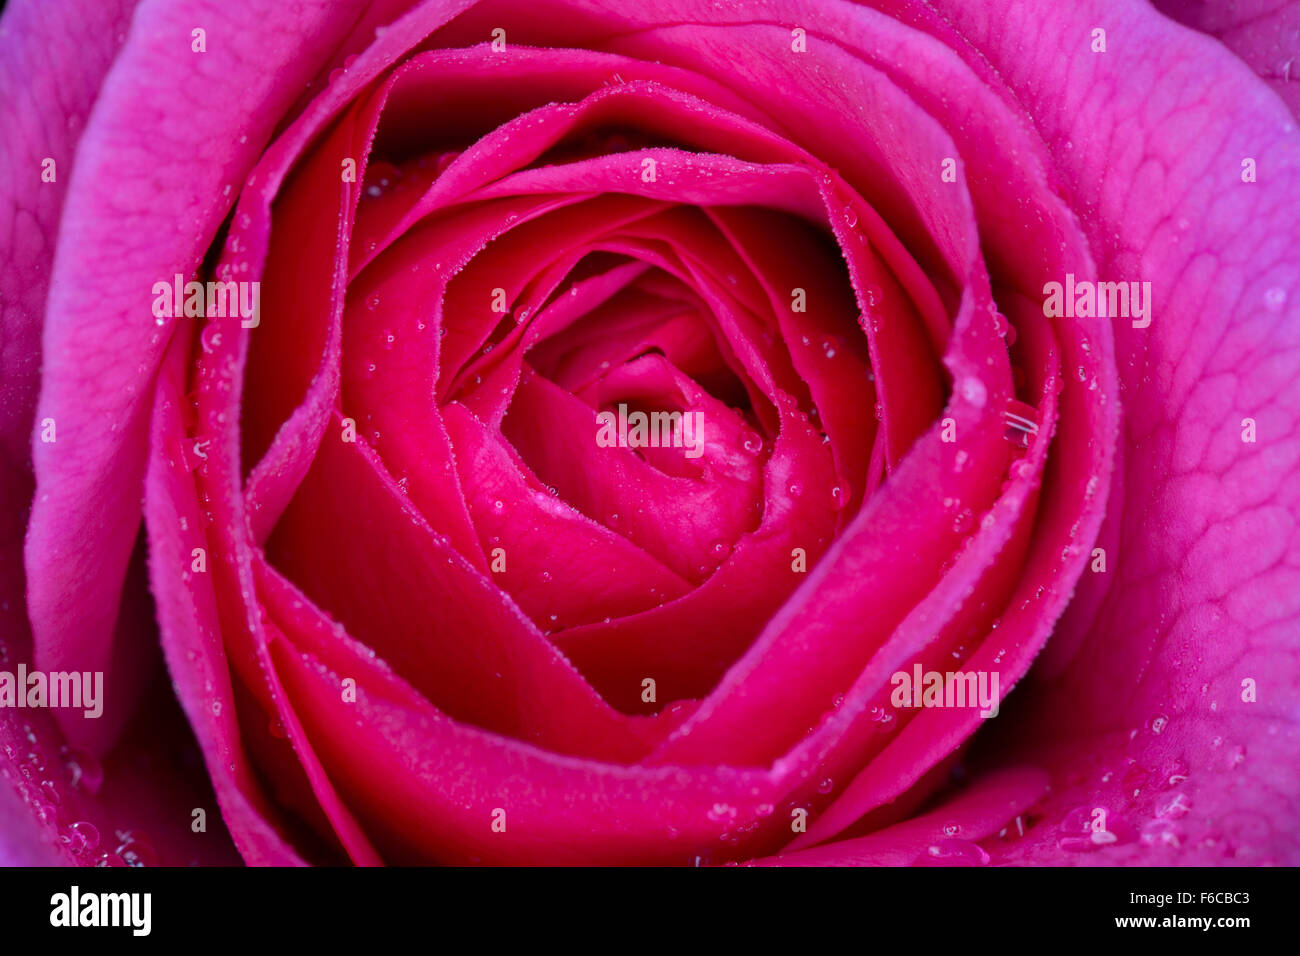 An extreme close up of a deep pink rose flower just opening in the morning with dew on the petals. - Stock Image